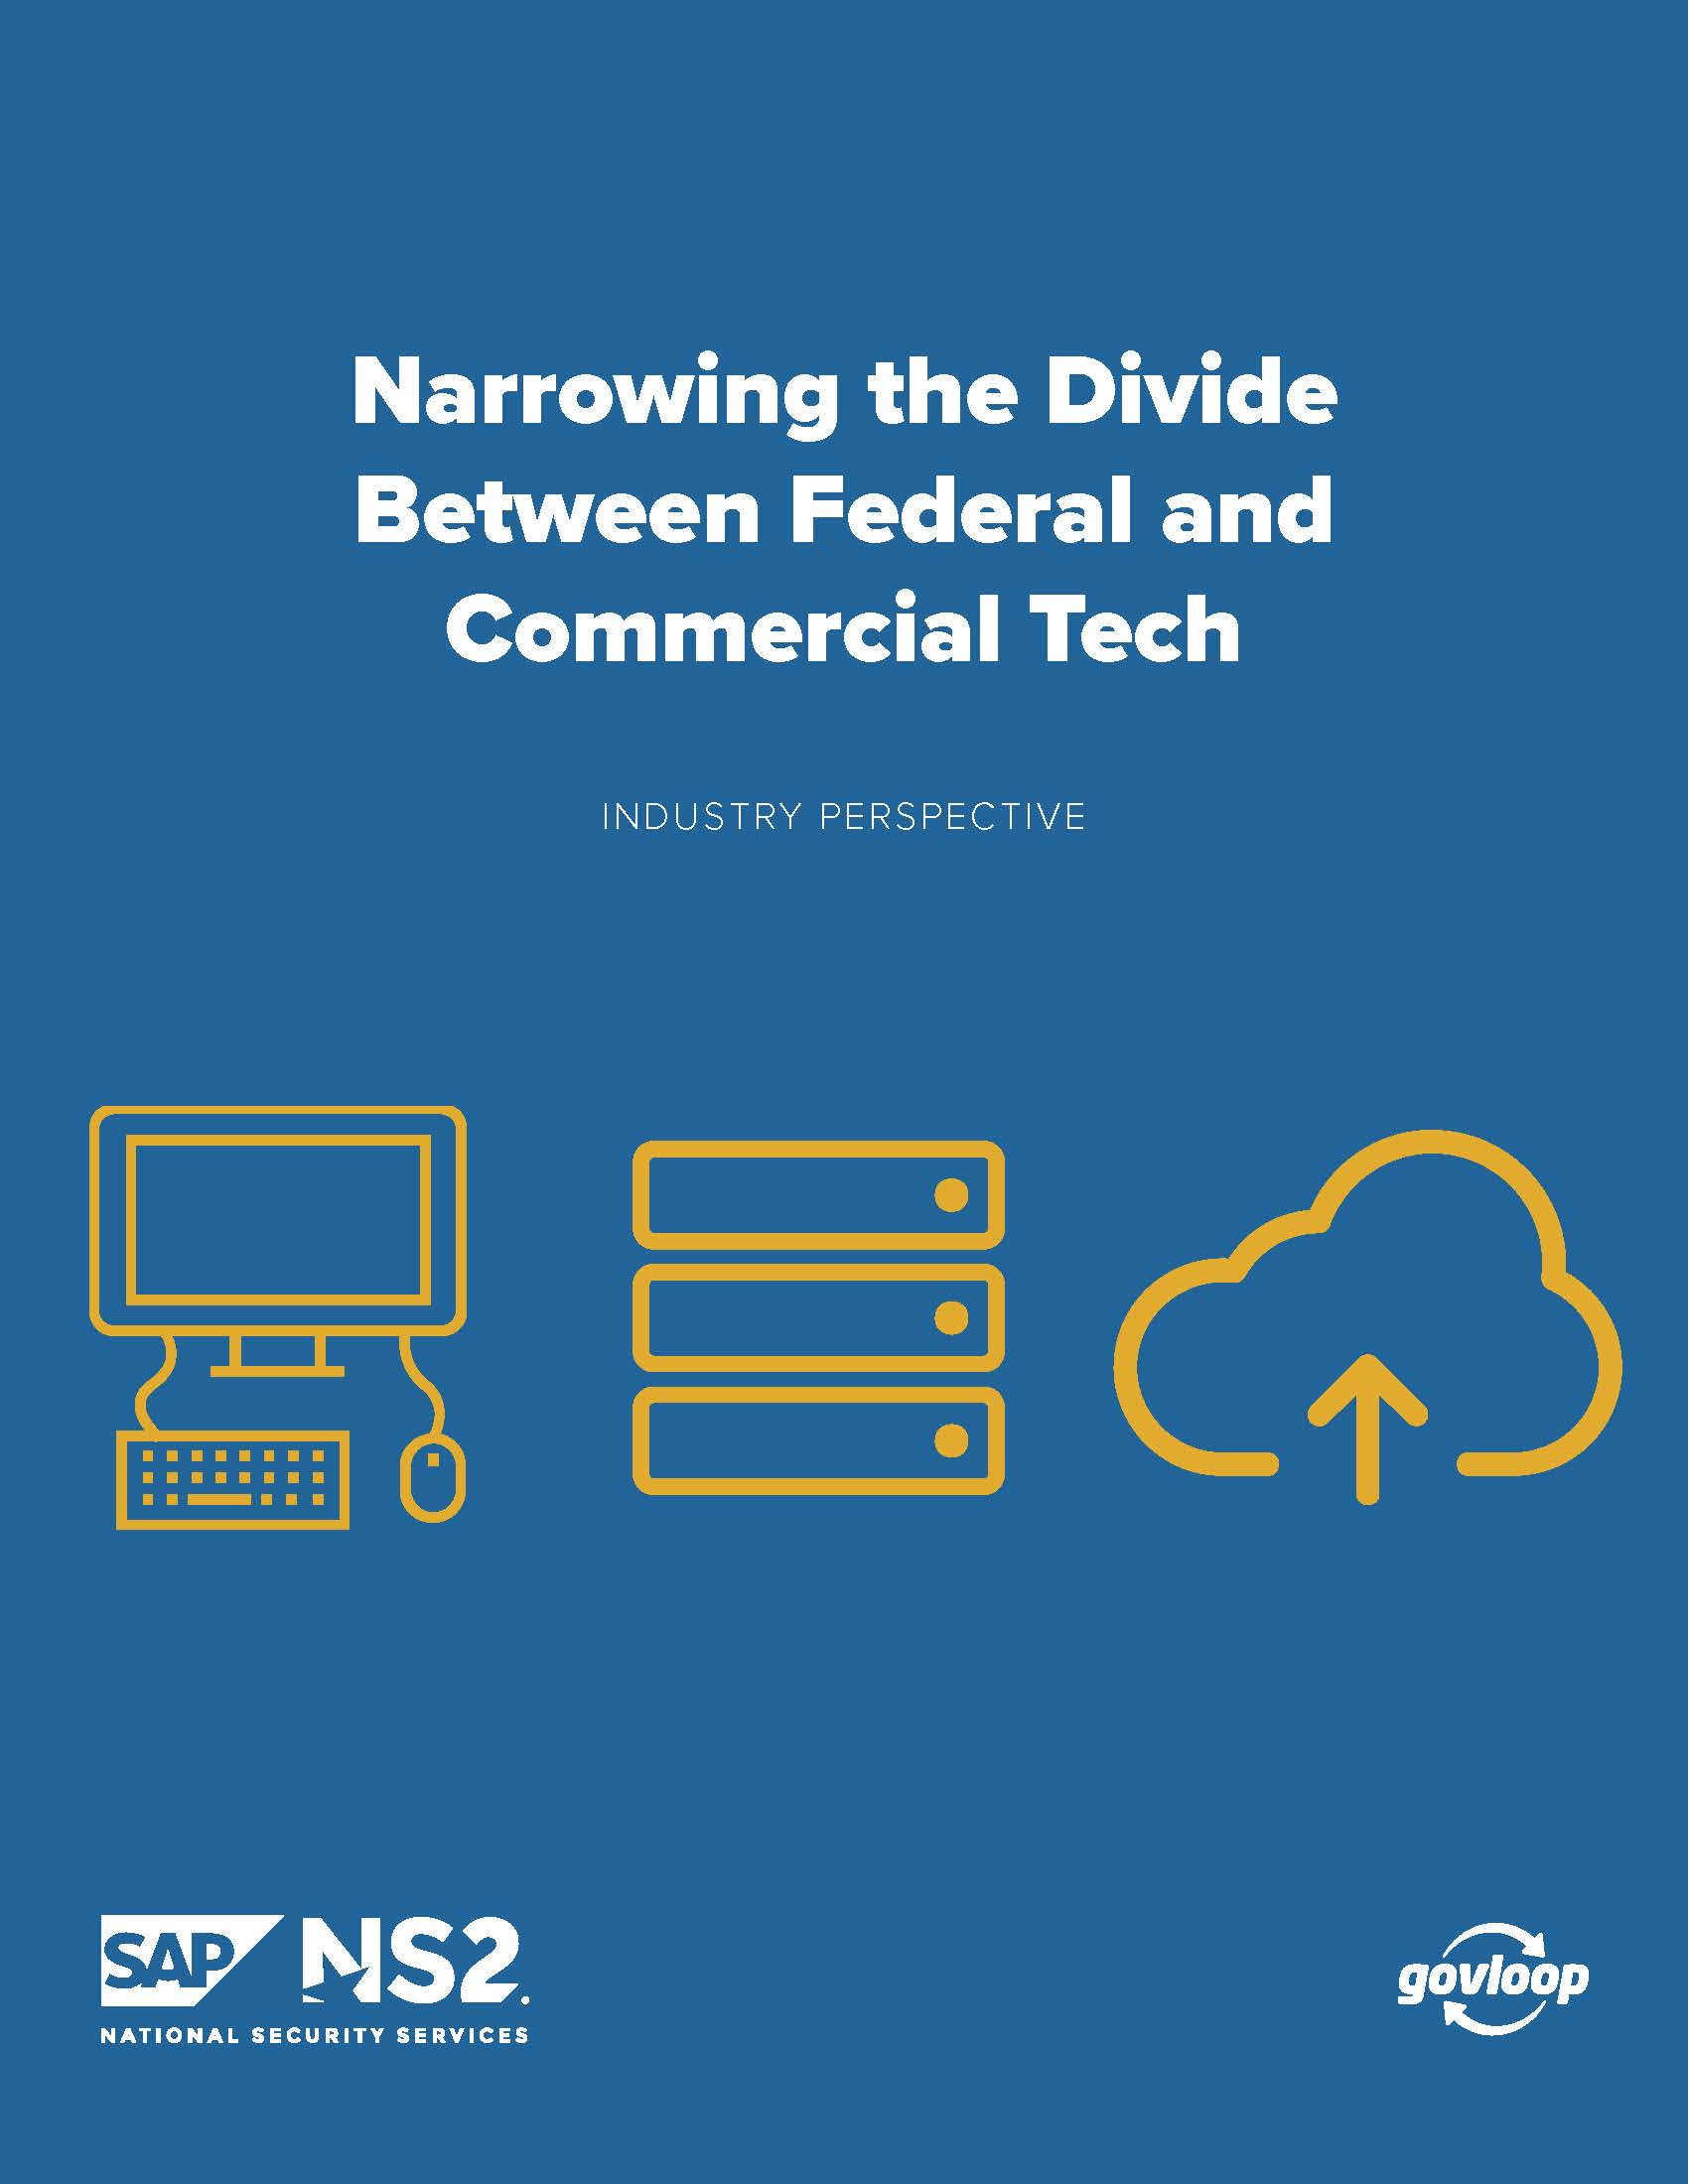 SAP NS2 Narrowing the Divide Between Federal and Commercial Tech